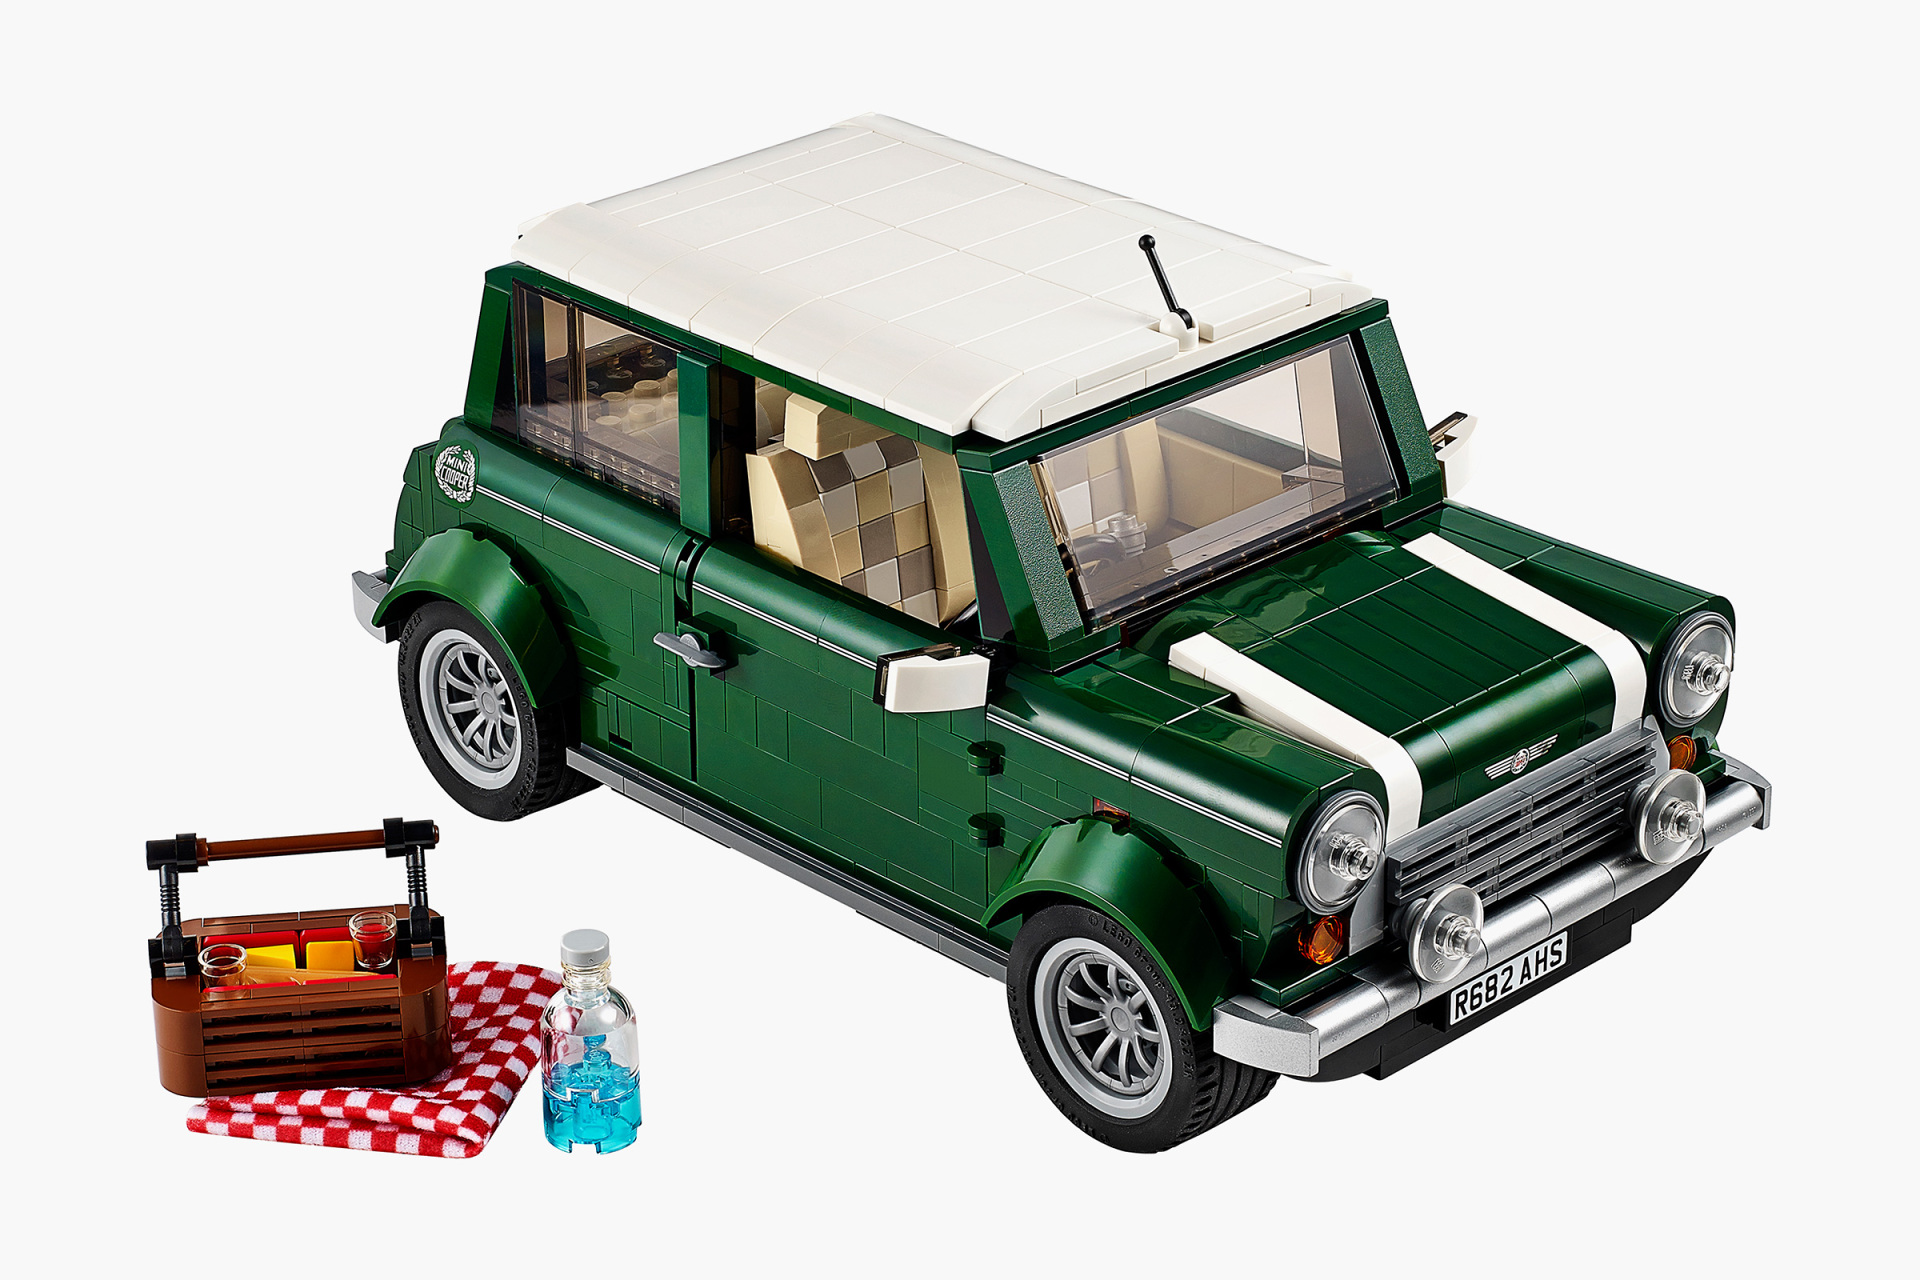 LEGO Mini Cooper Set 1